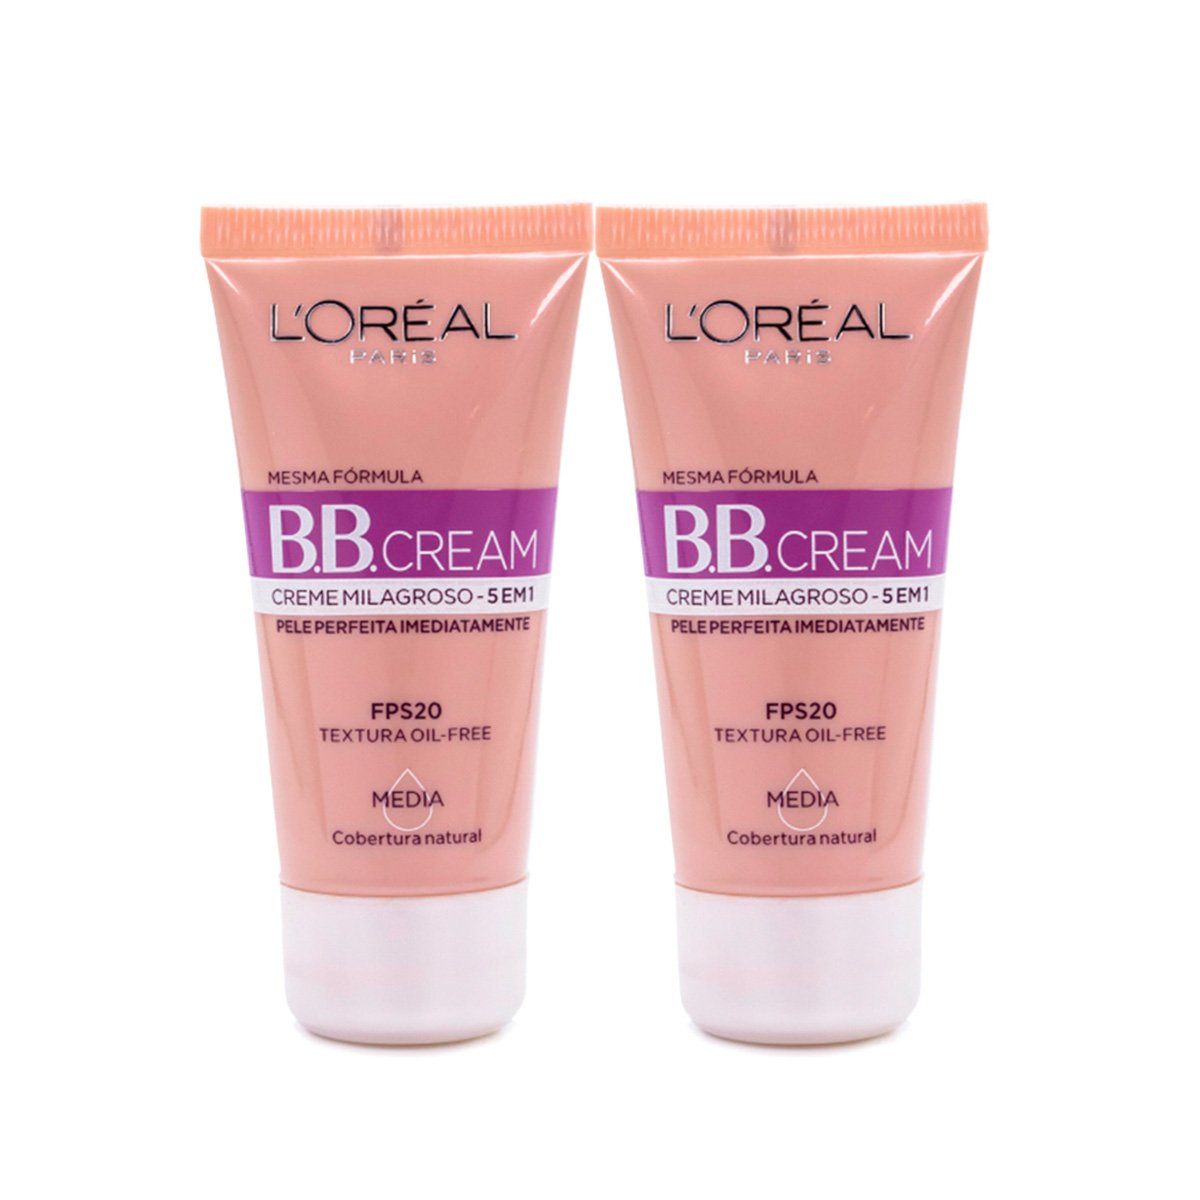 Kit 2 BB Cream L'Oréal Paris cor Média FPS 20 30ml